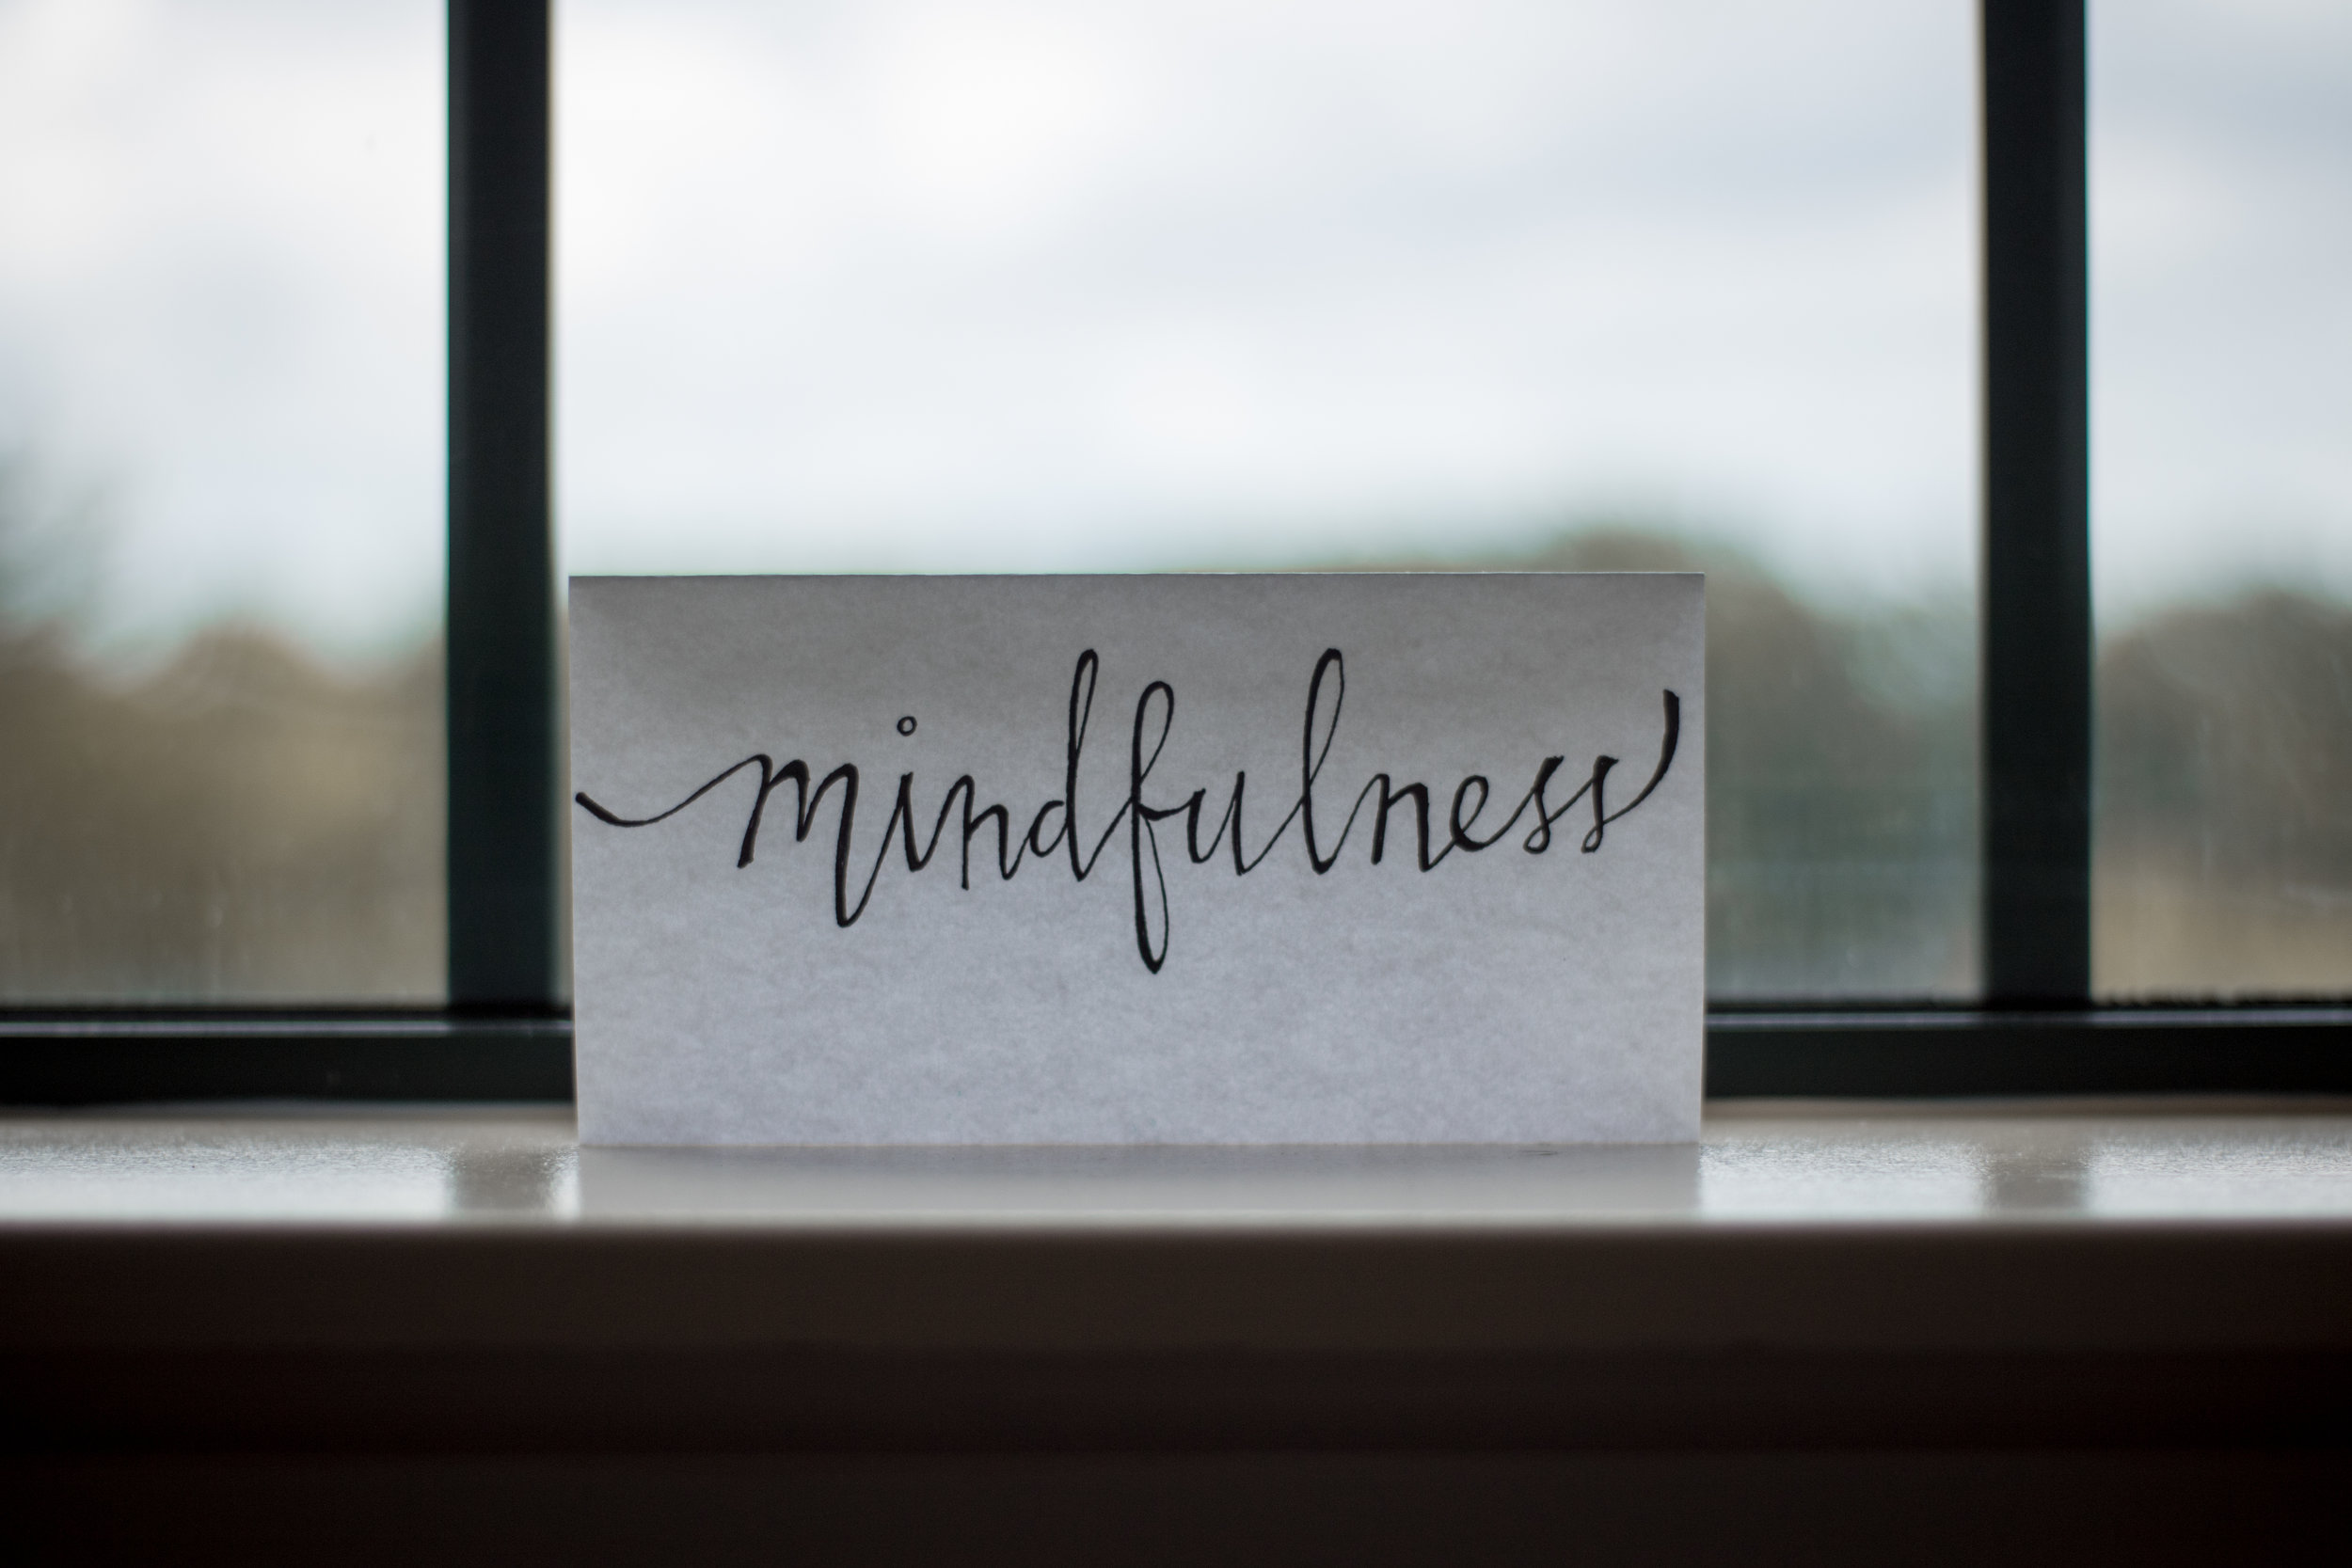 Mindfulness - We can practice being awake to what emerges on its own from the embodied depths of being.